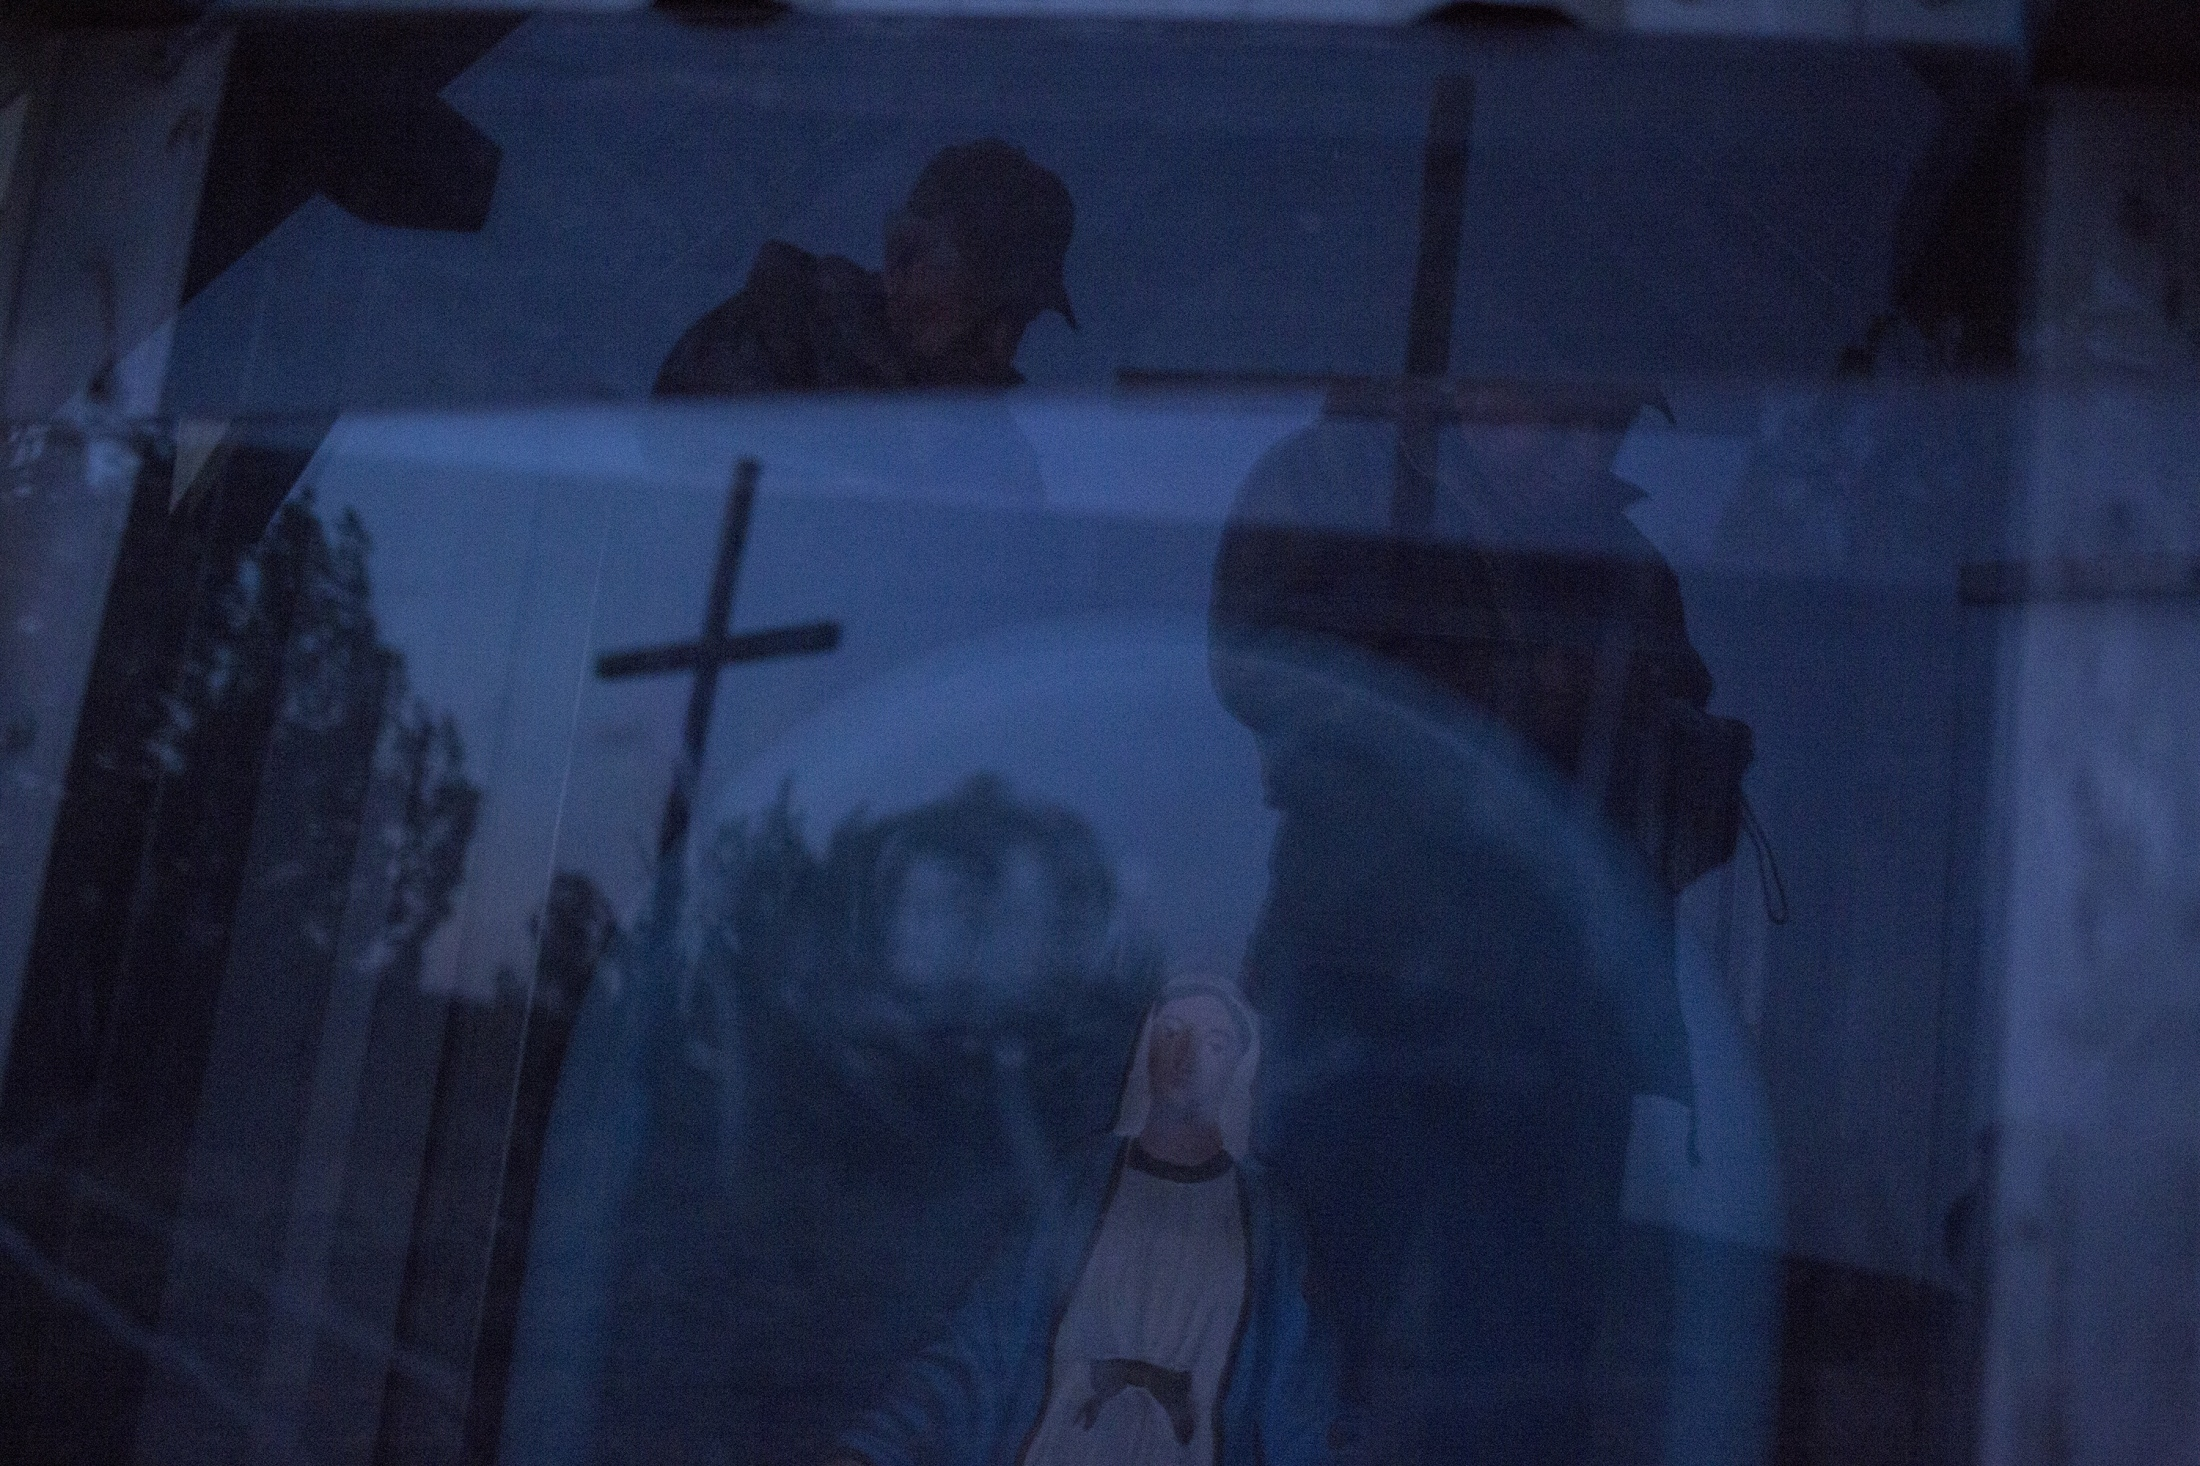 George Gonzales prays at a small chapel atop a hill after he carried a heavy wooden cross for several miles to a peaceful spot on his property south of Santa Rosa. He practices the annual Lenten ritual in the days leading up the the Easter holiday. The majority of residents were raised practicing Catholicism though other denominations have churches in the town.